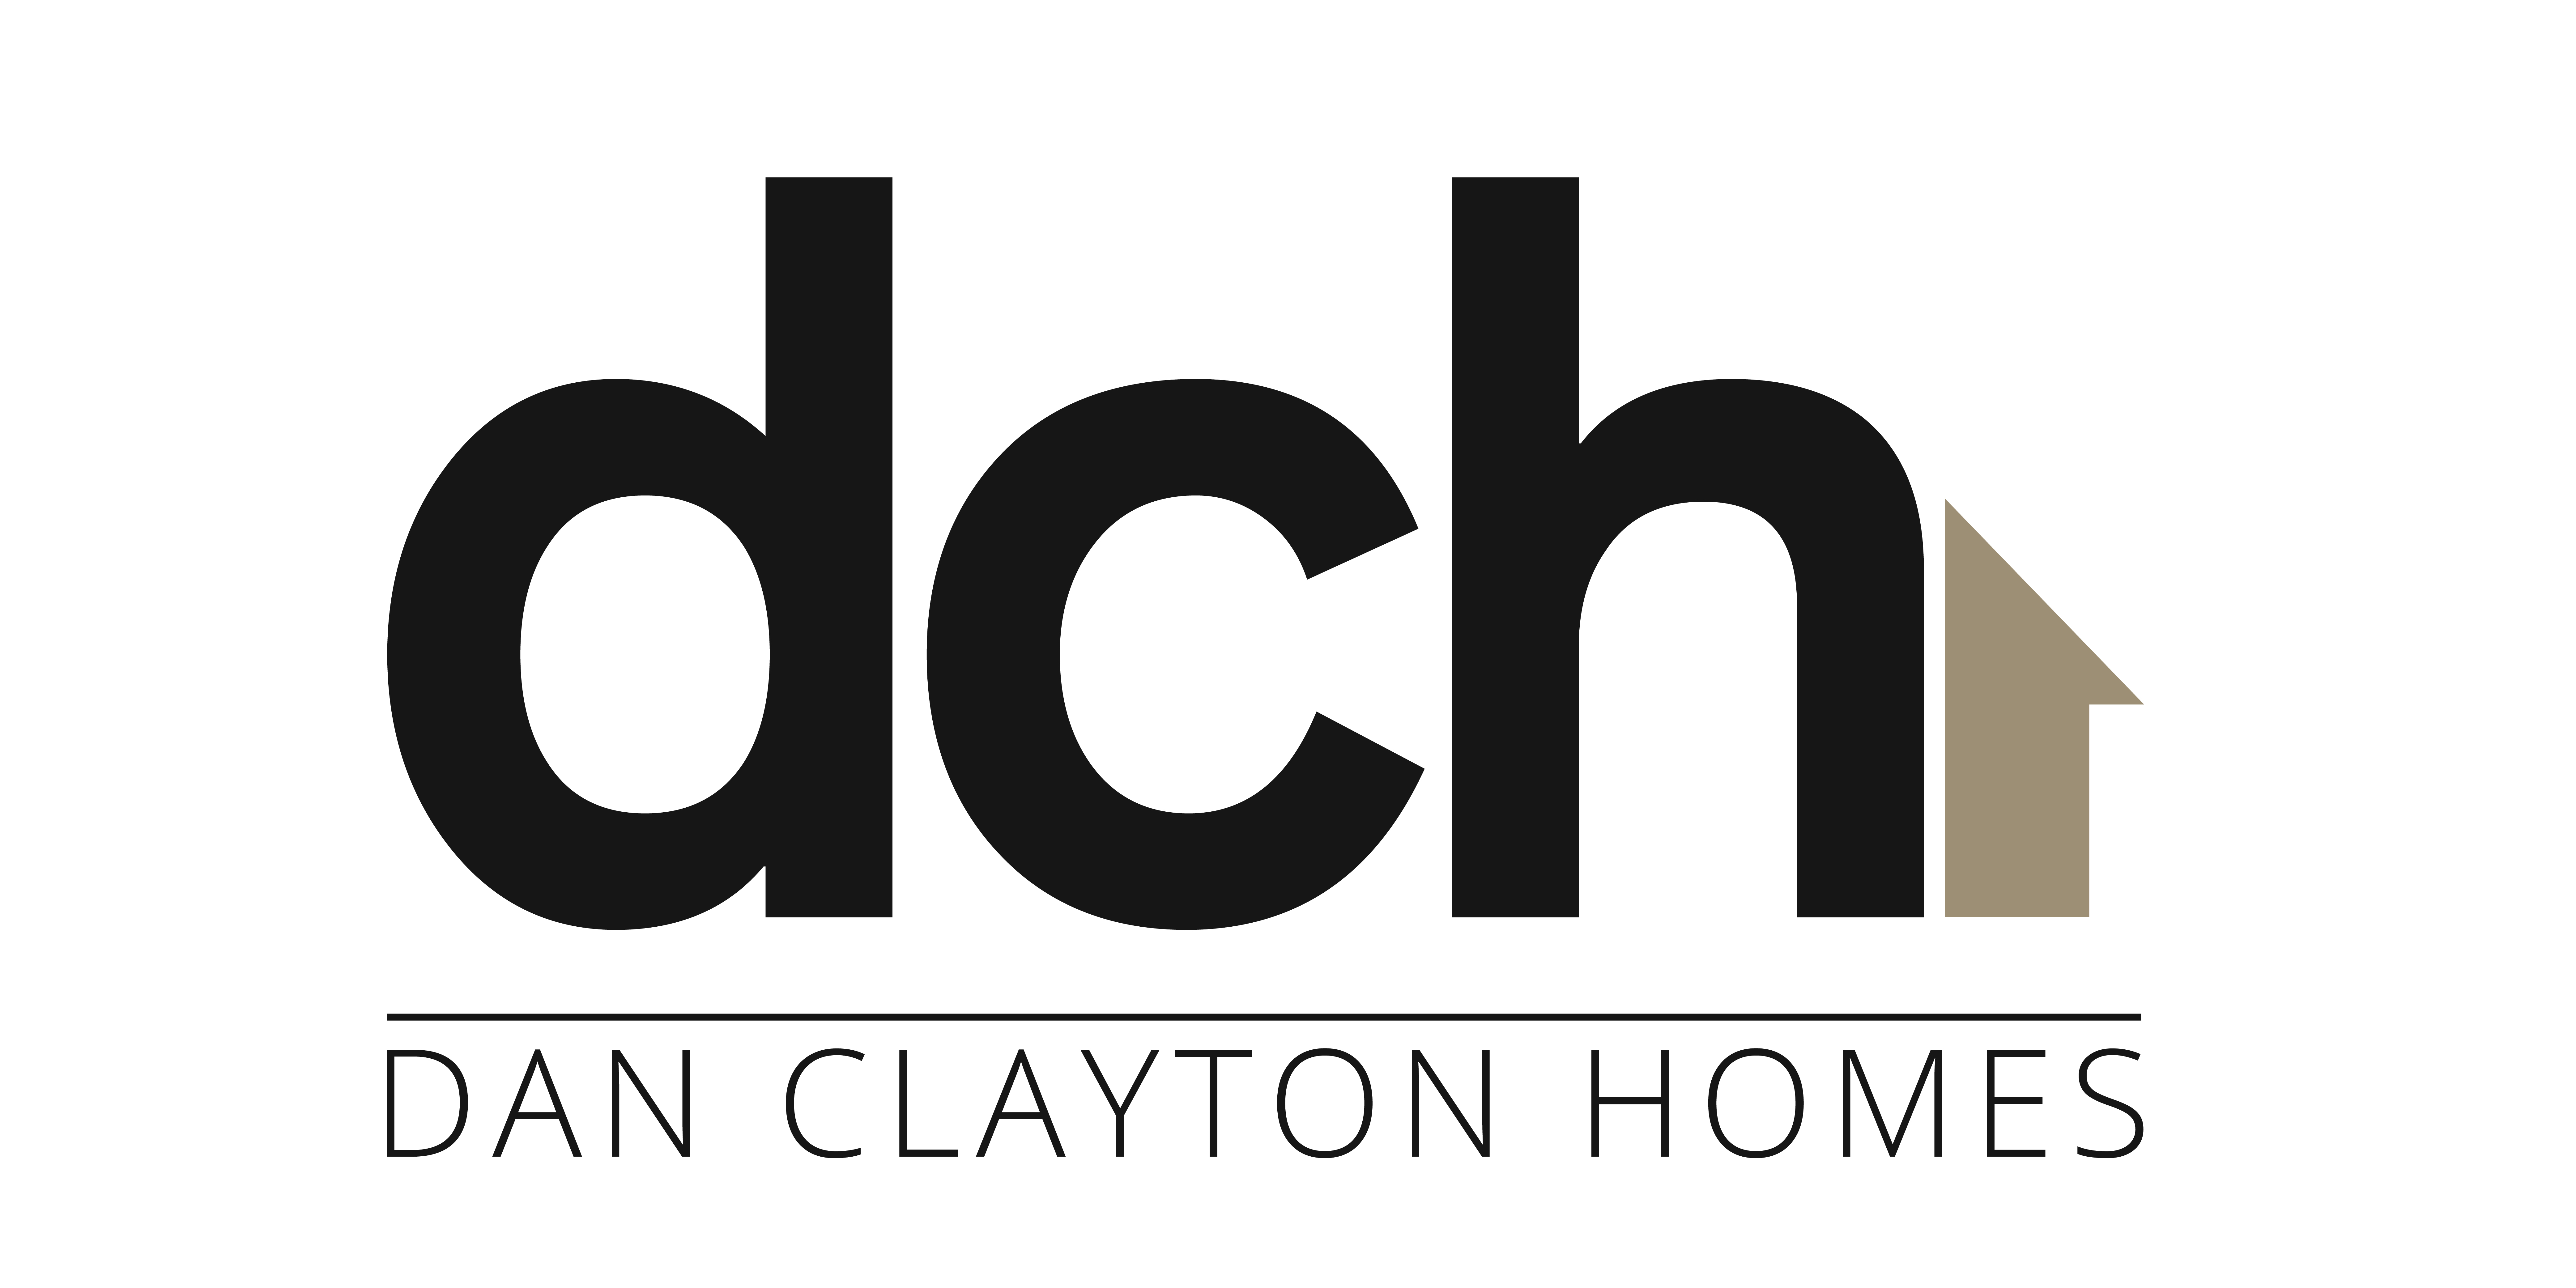 Dan Clayton Homes